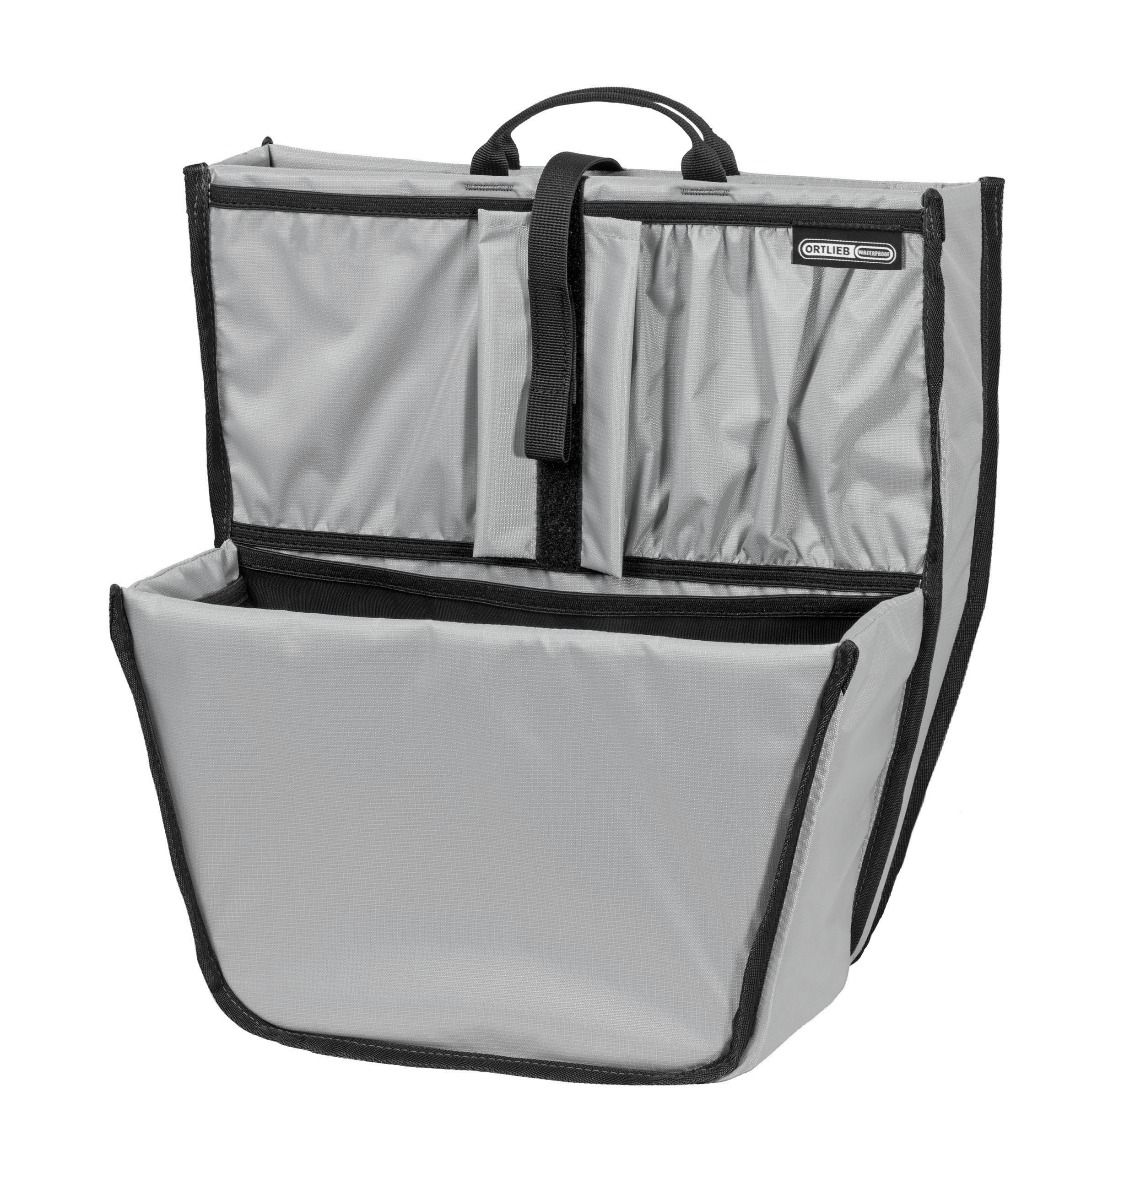 Ortlieb Commuter Insert for Pannier, grey